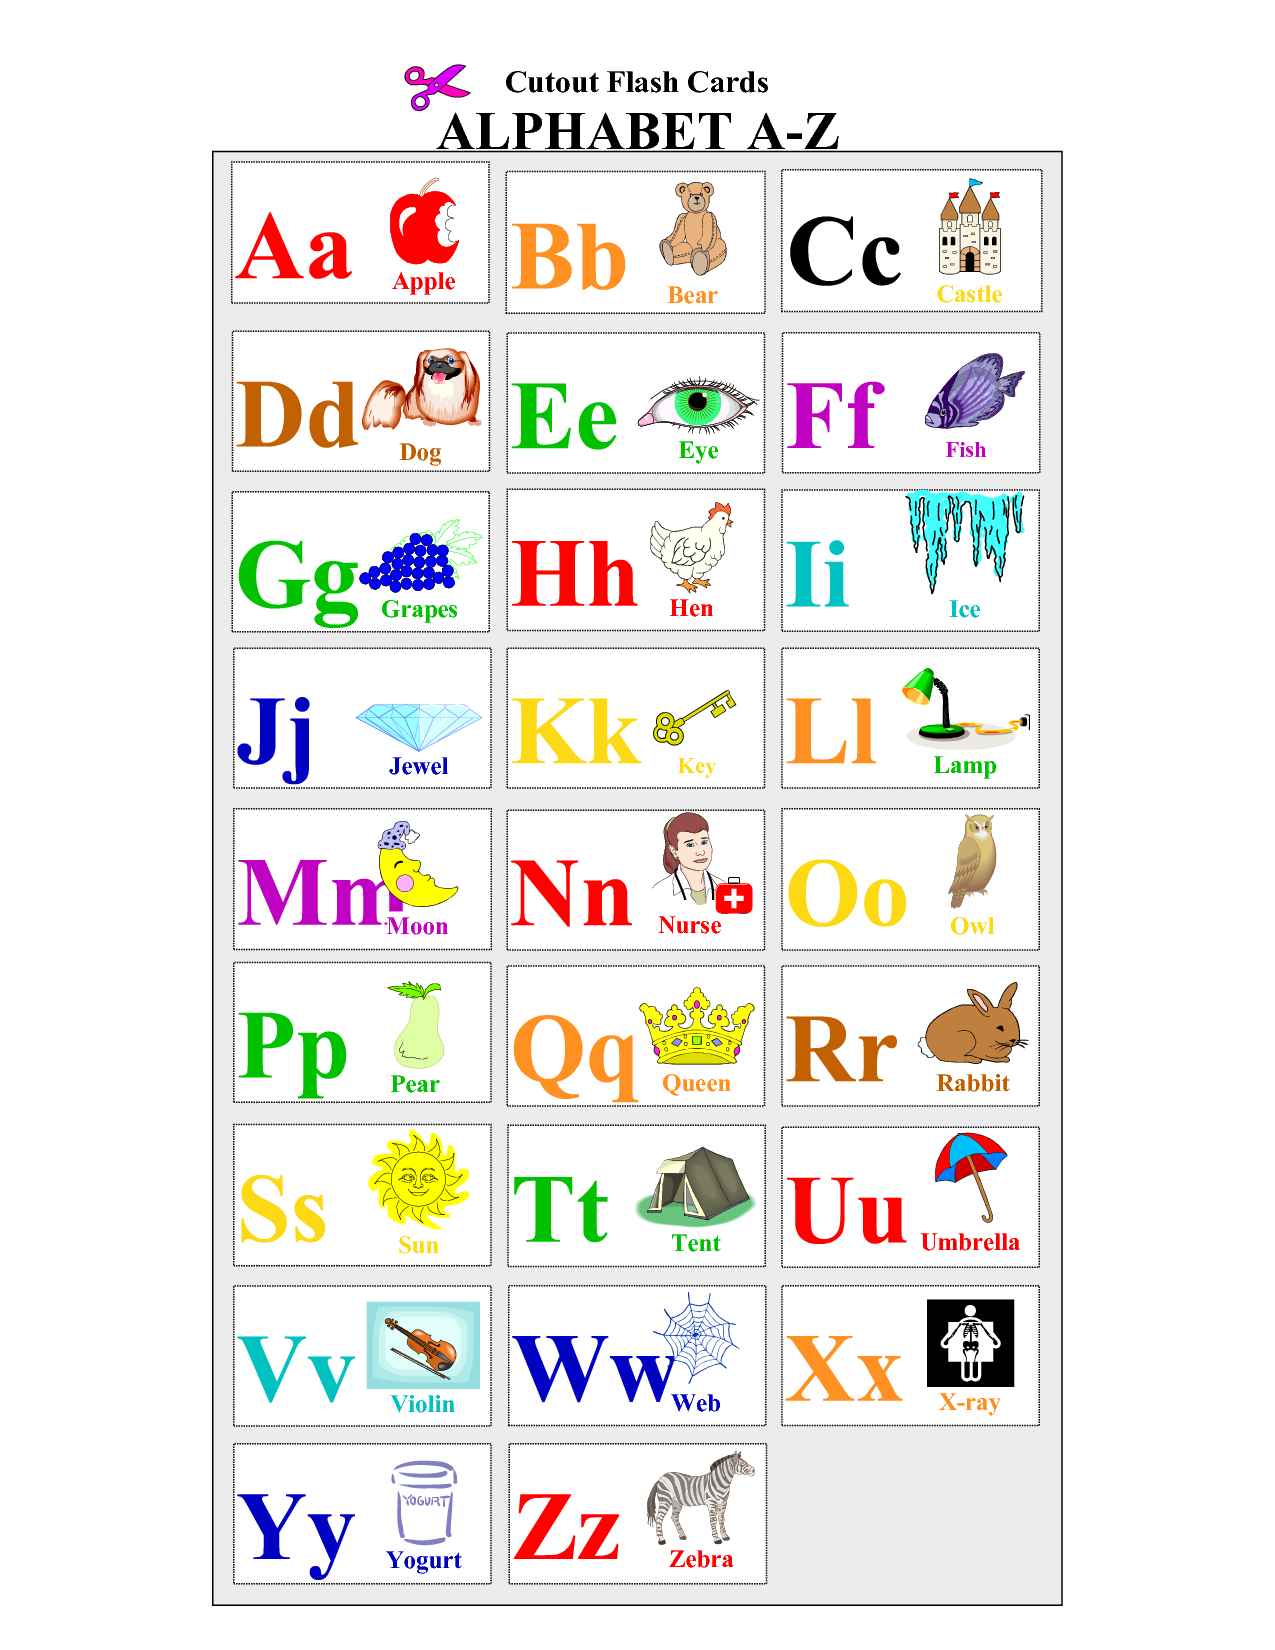 Alphabet-Flash-Cards-To-Print - Coloring Pages For Adults,coloring - Free Printable Abc Flashcards